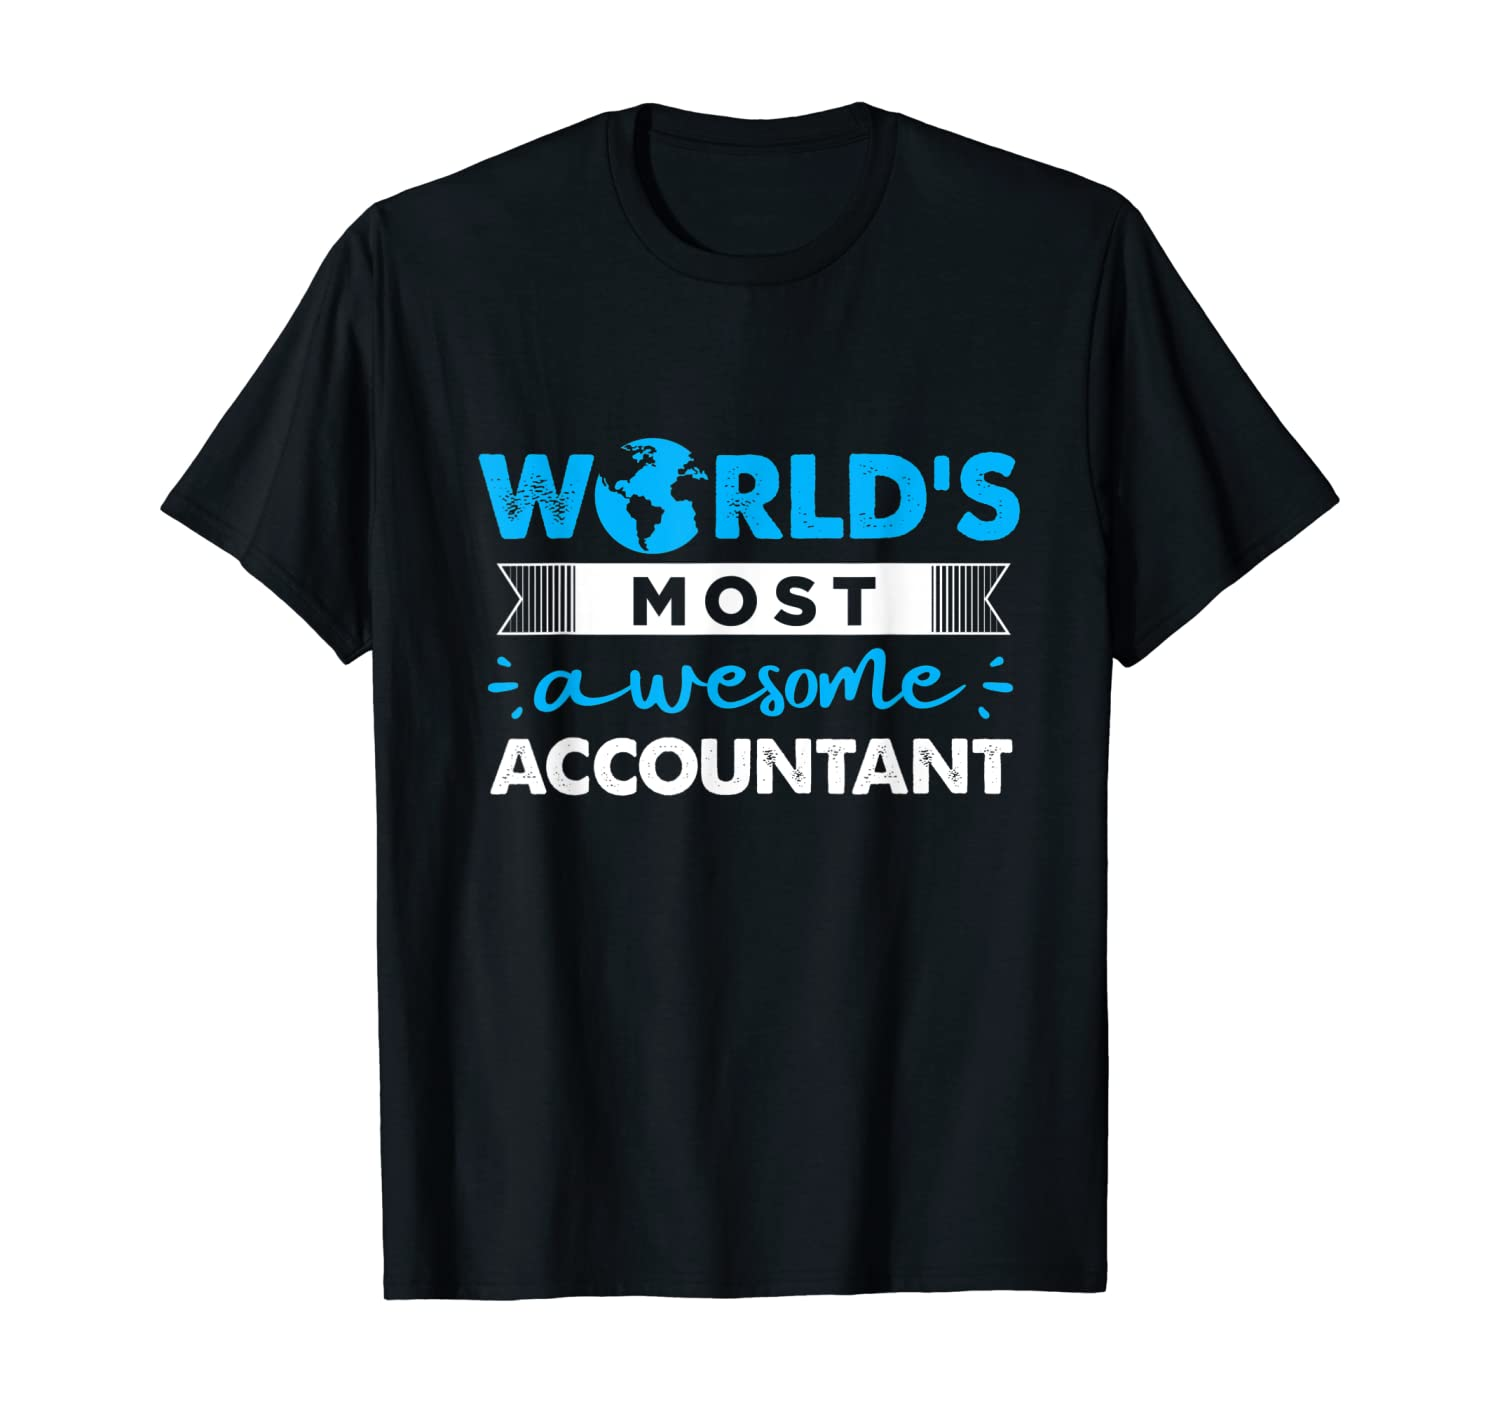 Accountant Gift guess work Father man funny cool T-Shirt